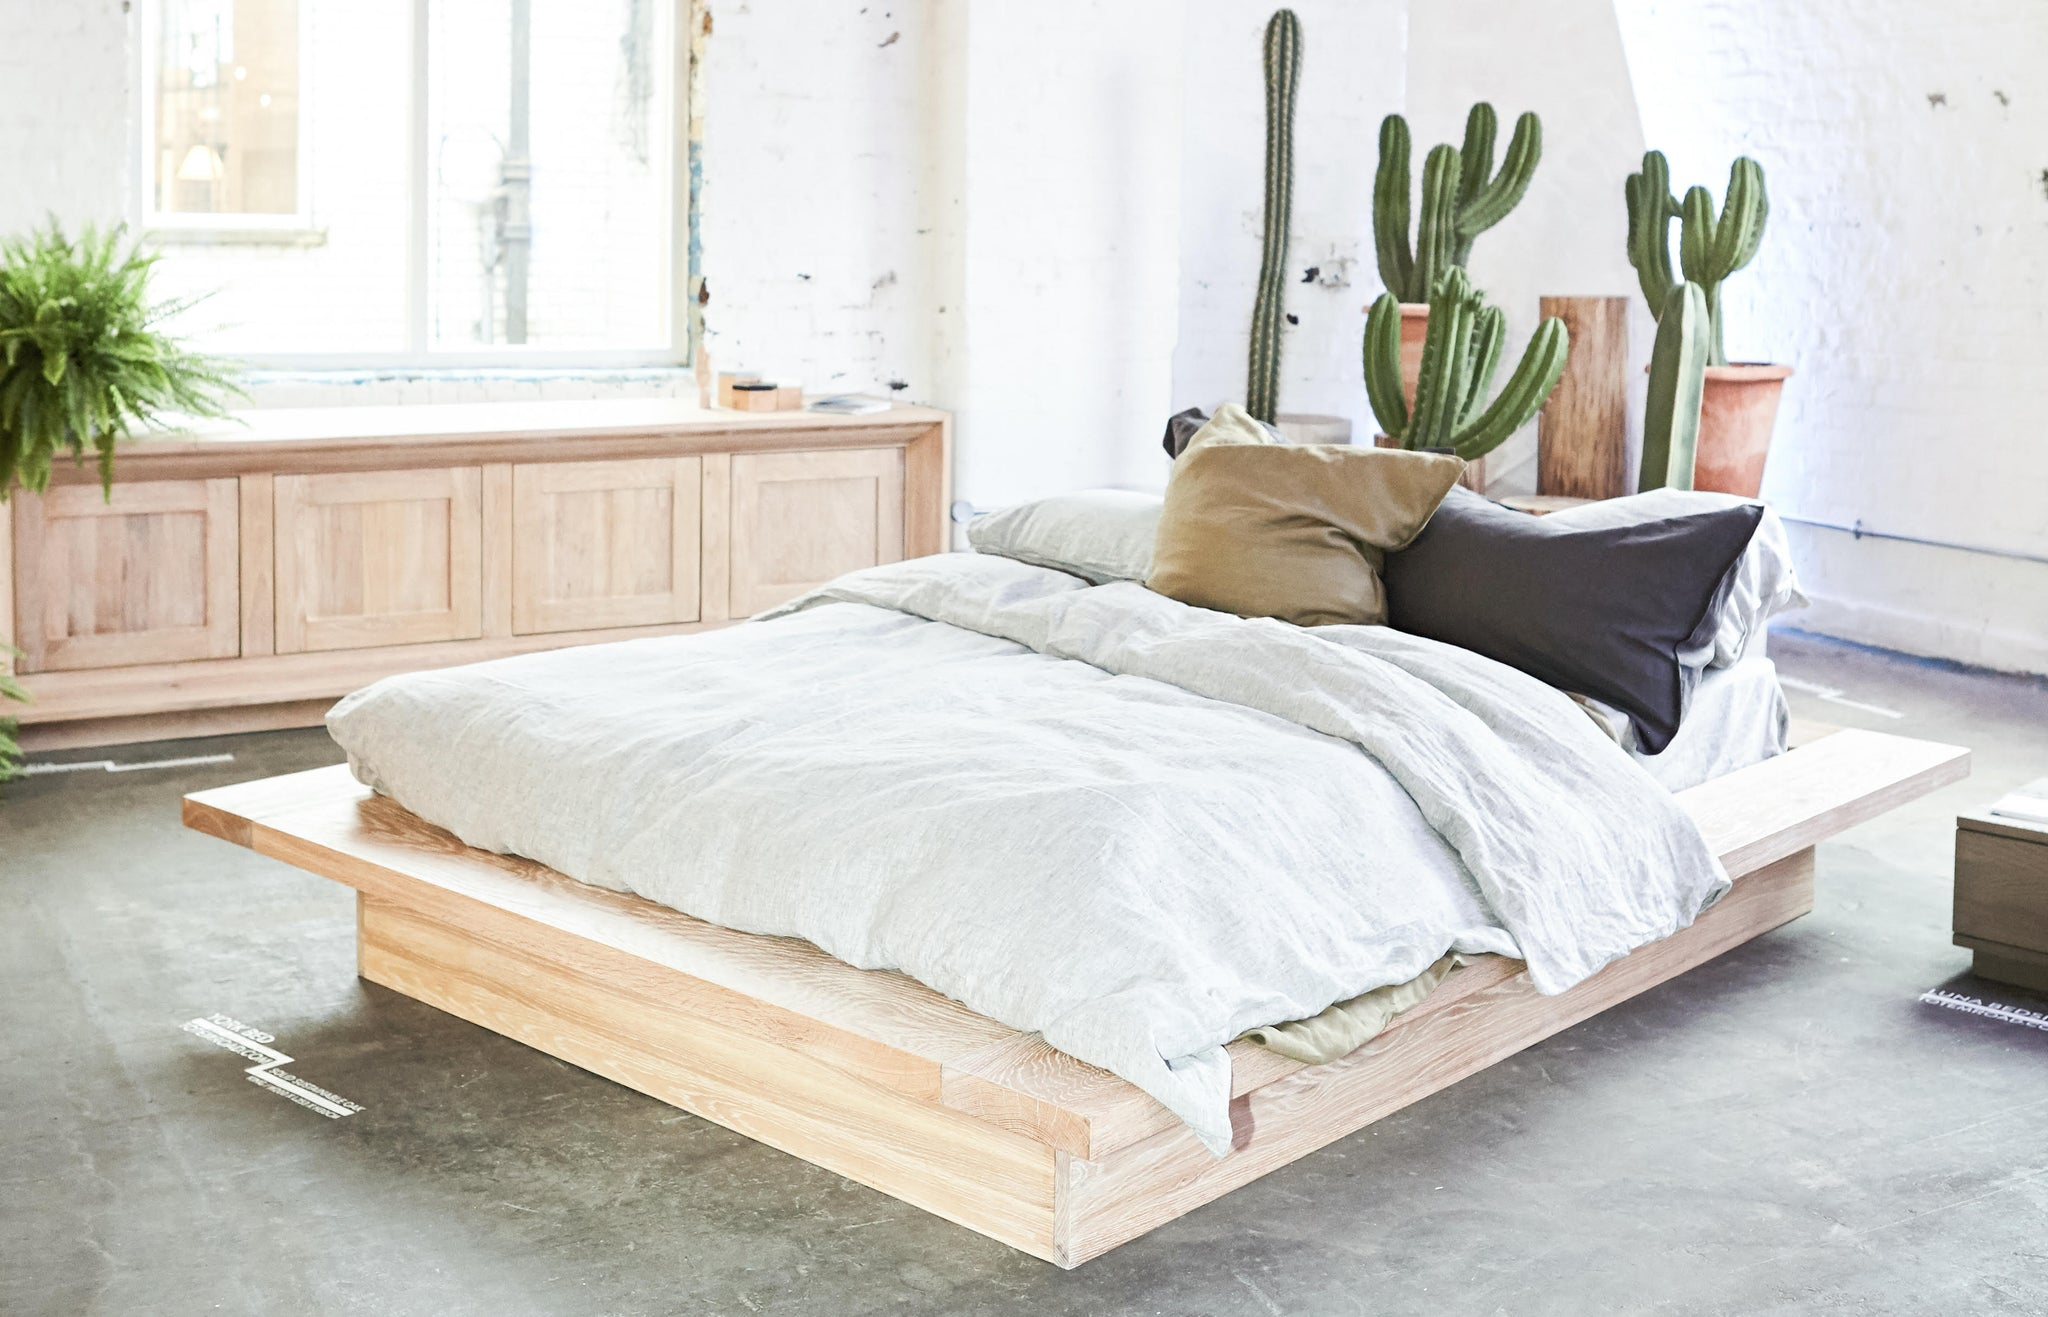 Our Sustainable Bedroom Packages Totem Road